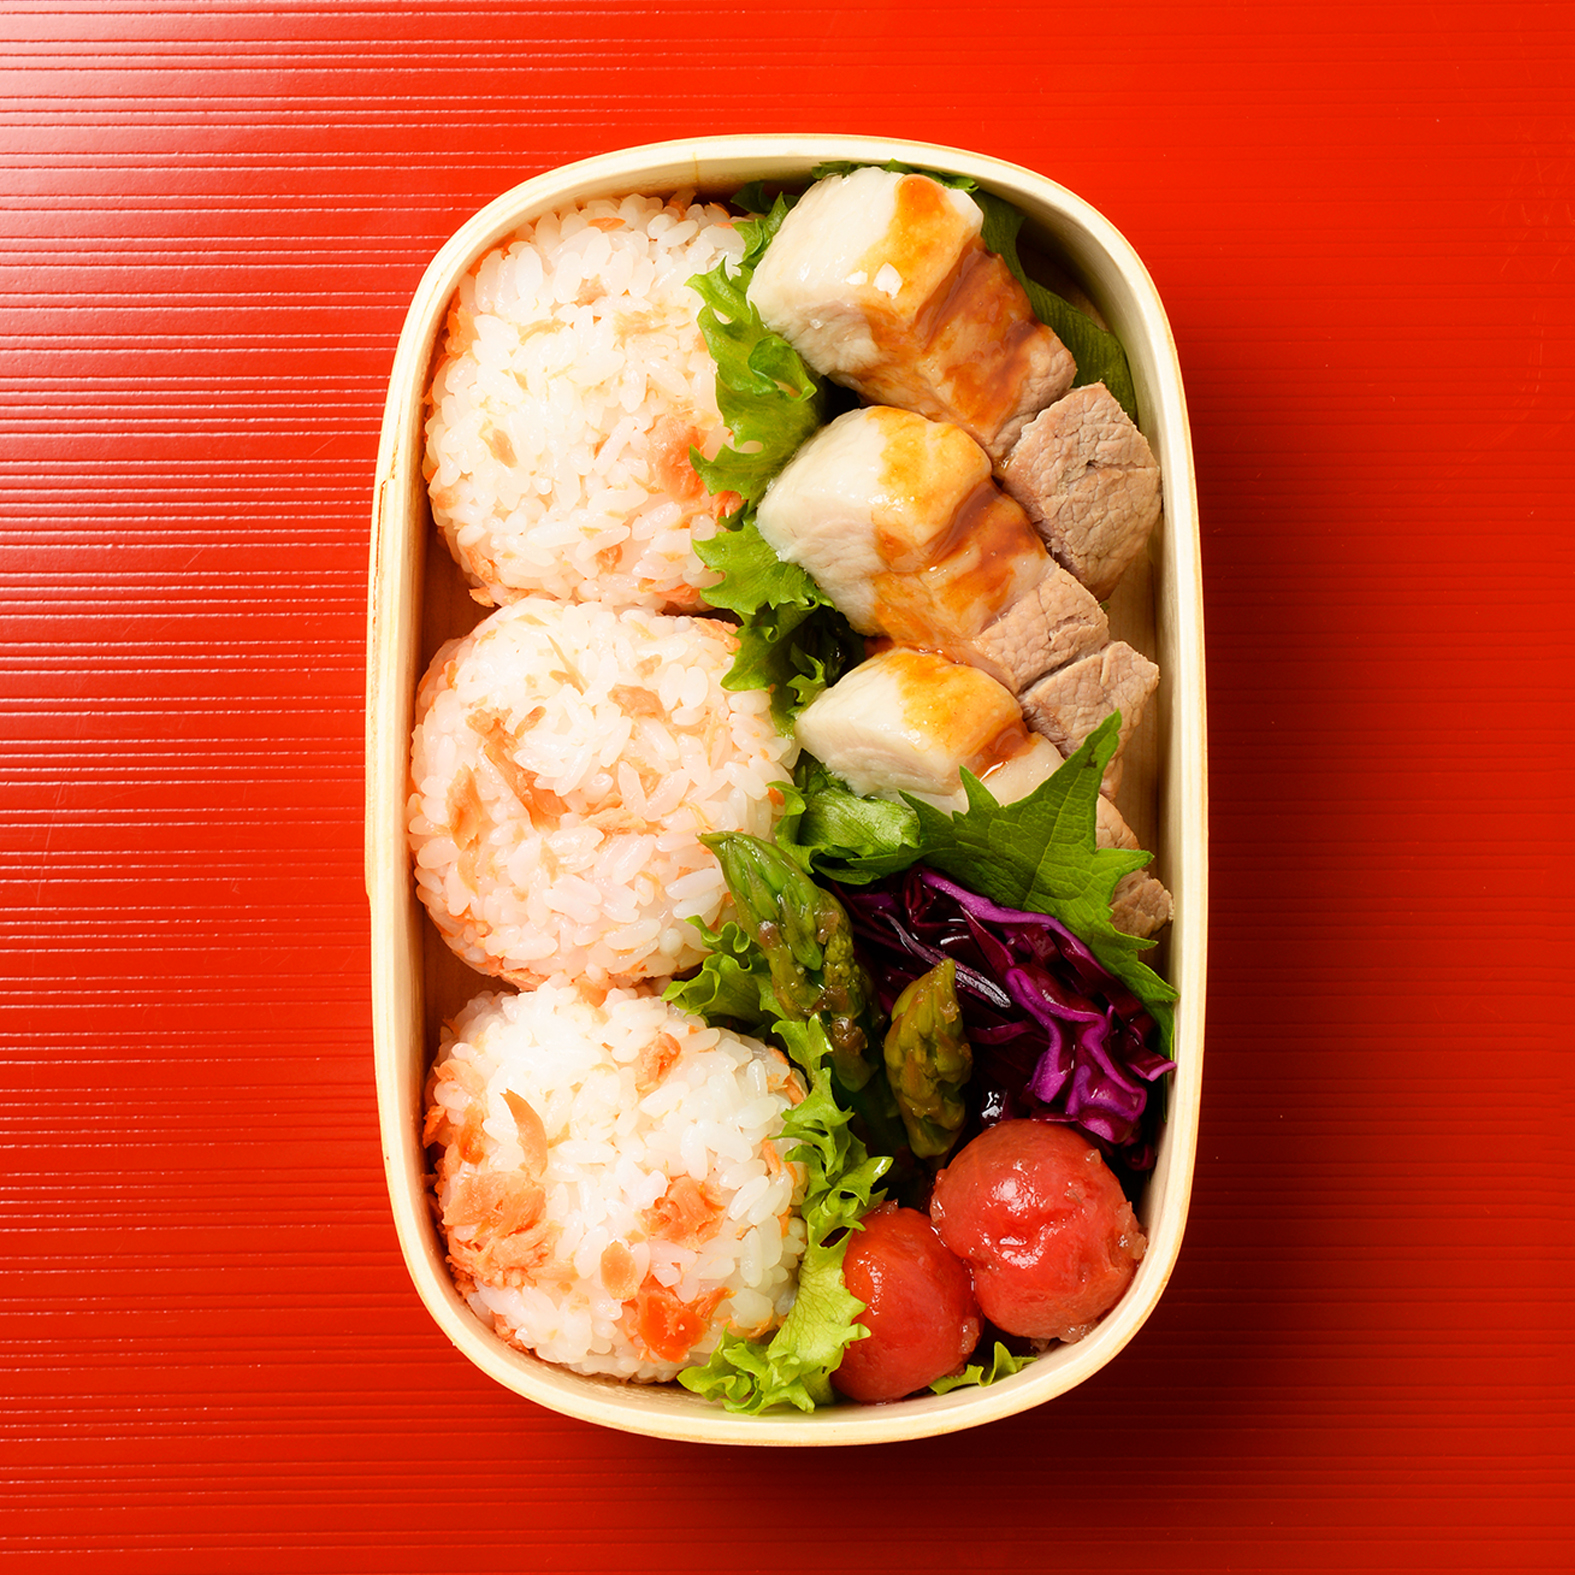 Boiled Sweet & Sour Pork Bento